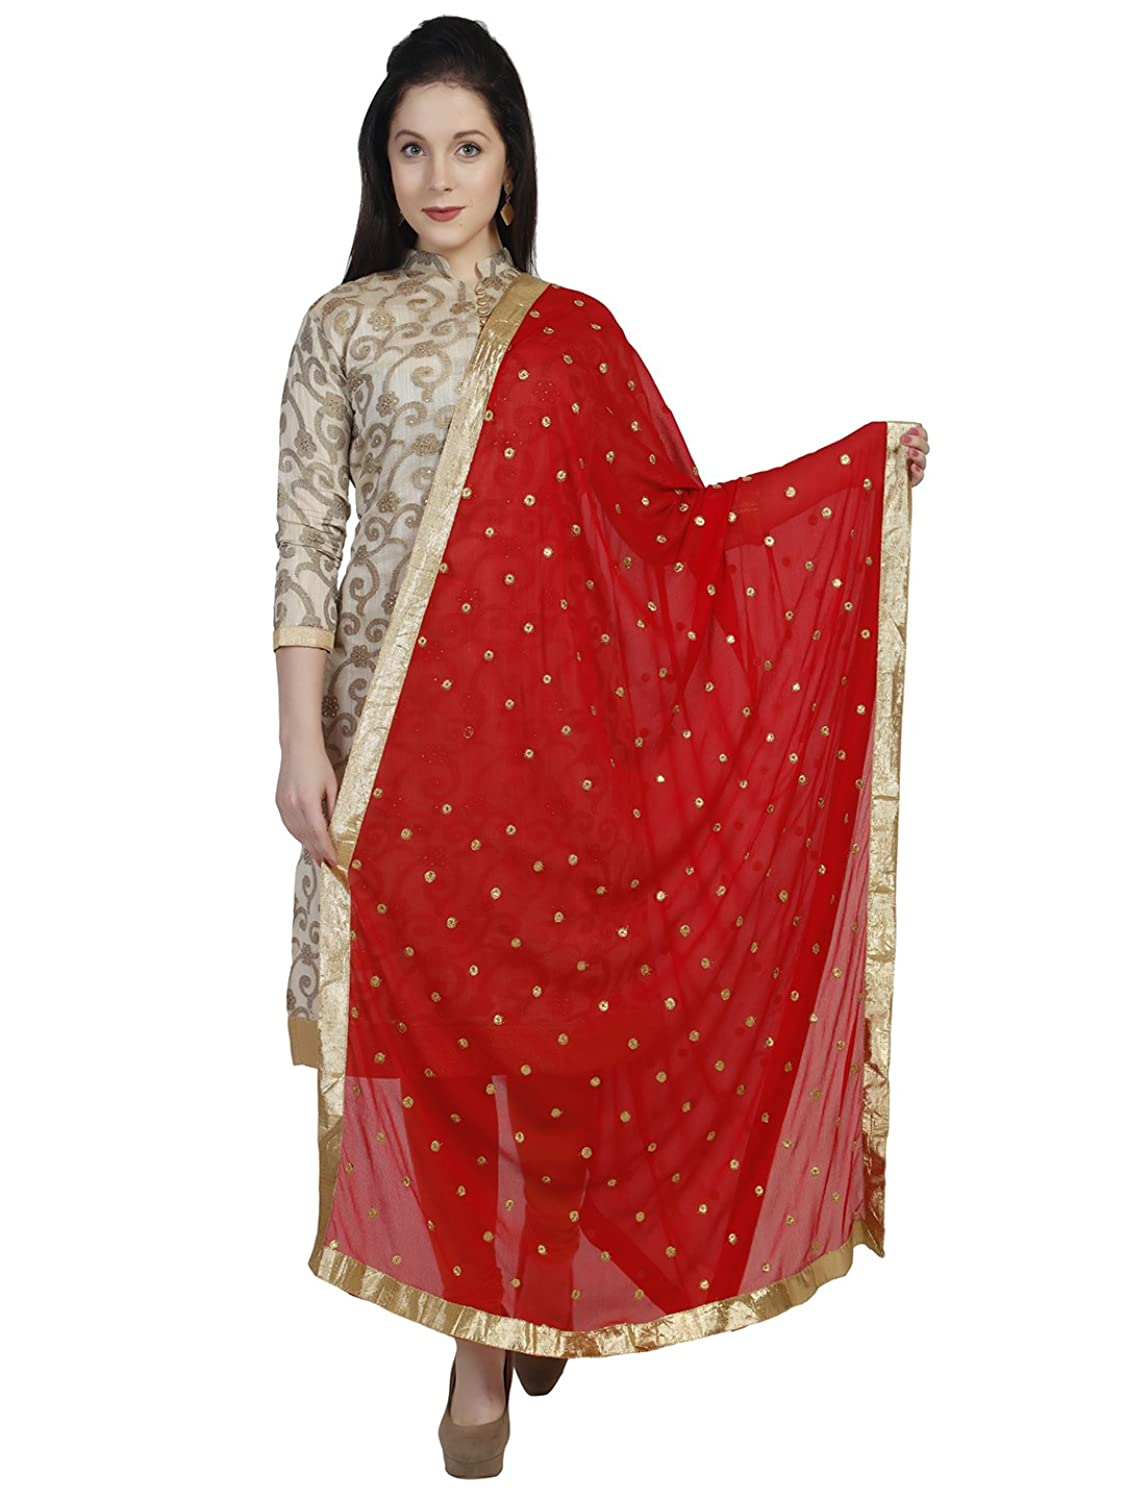 d260f34a38 Dupatta: Buy Stoles online at best prices in India - Amazon.in